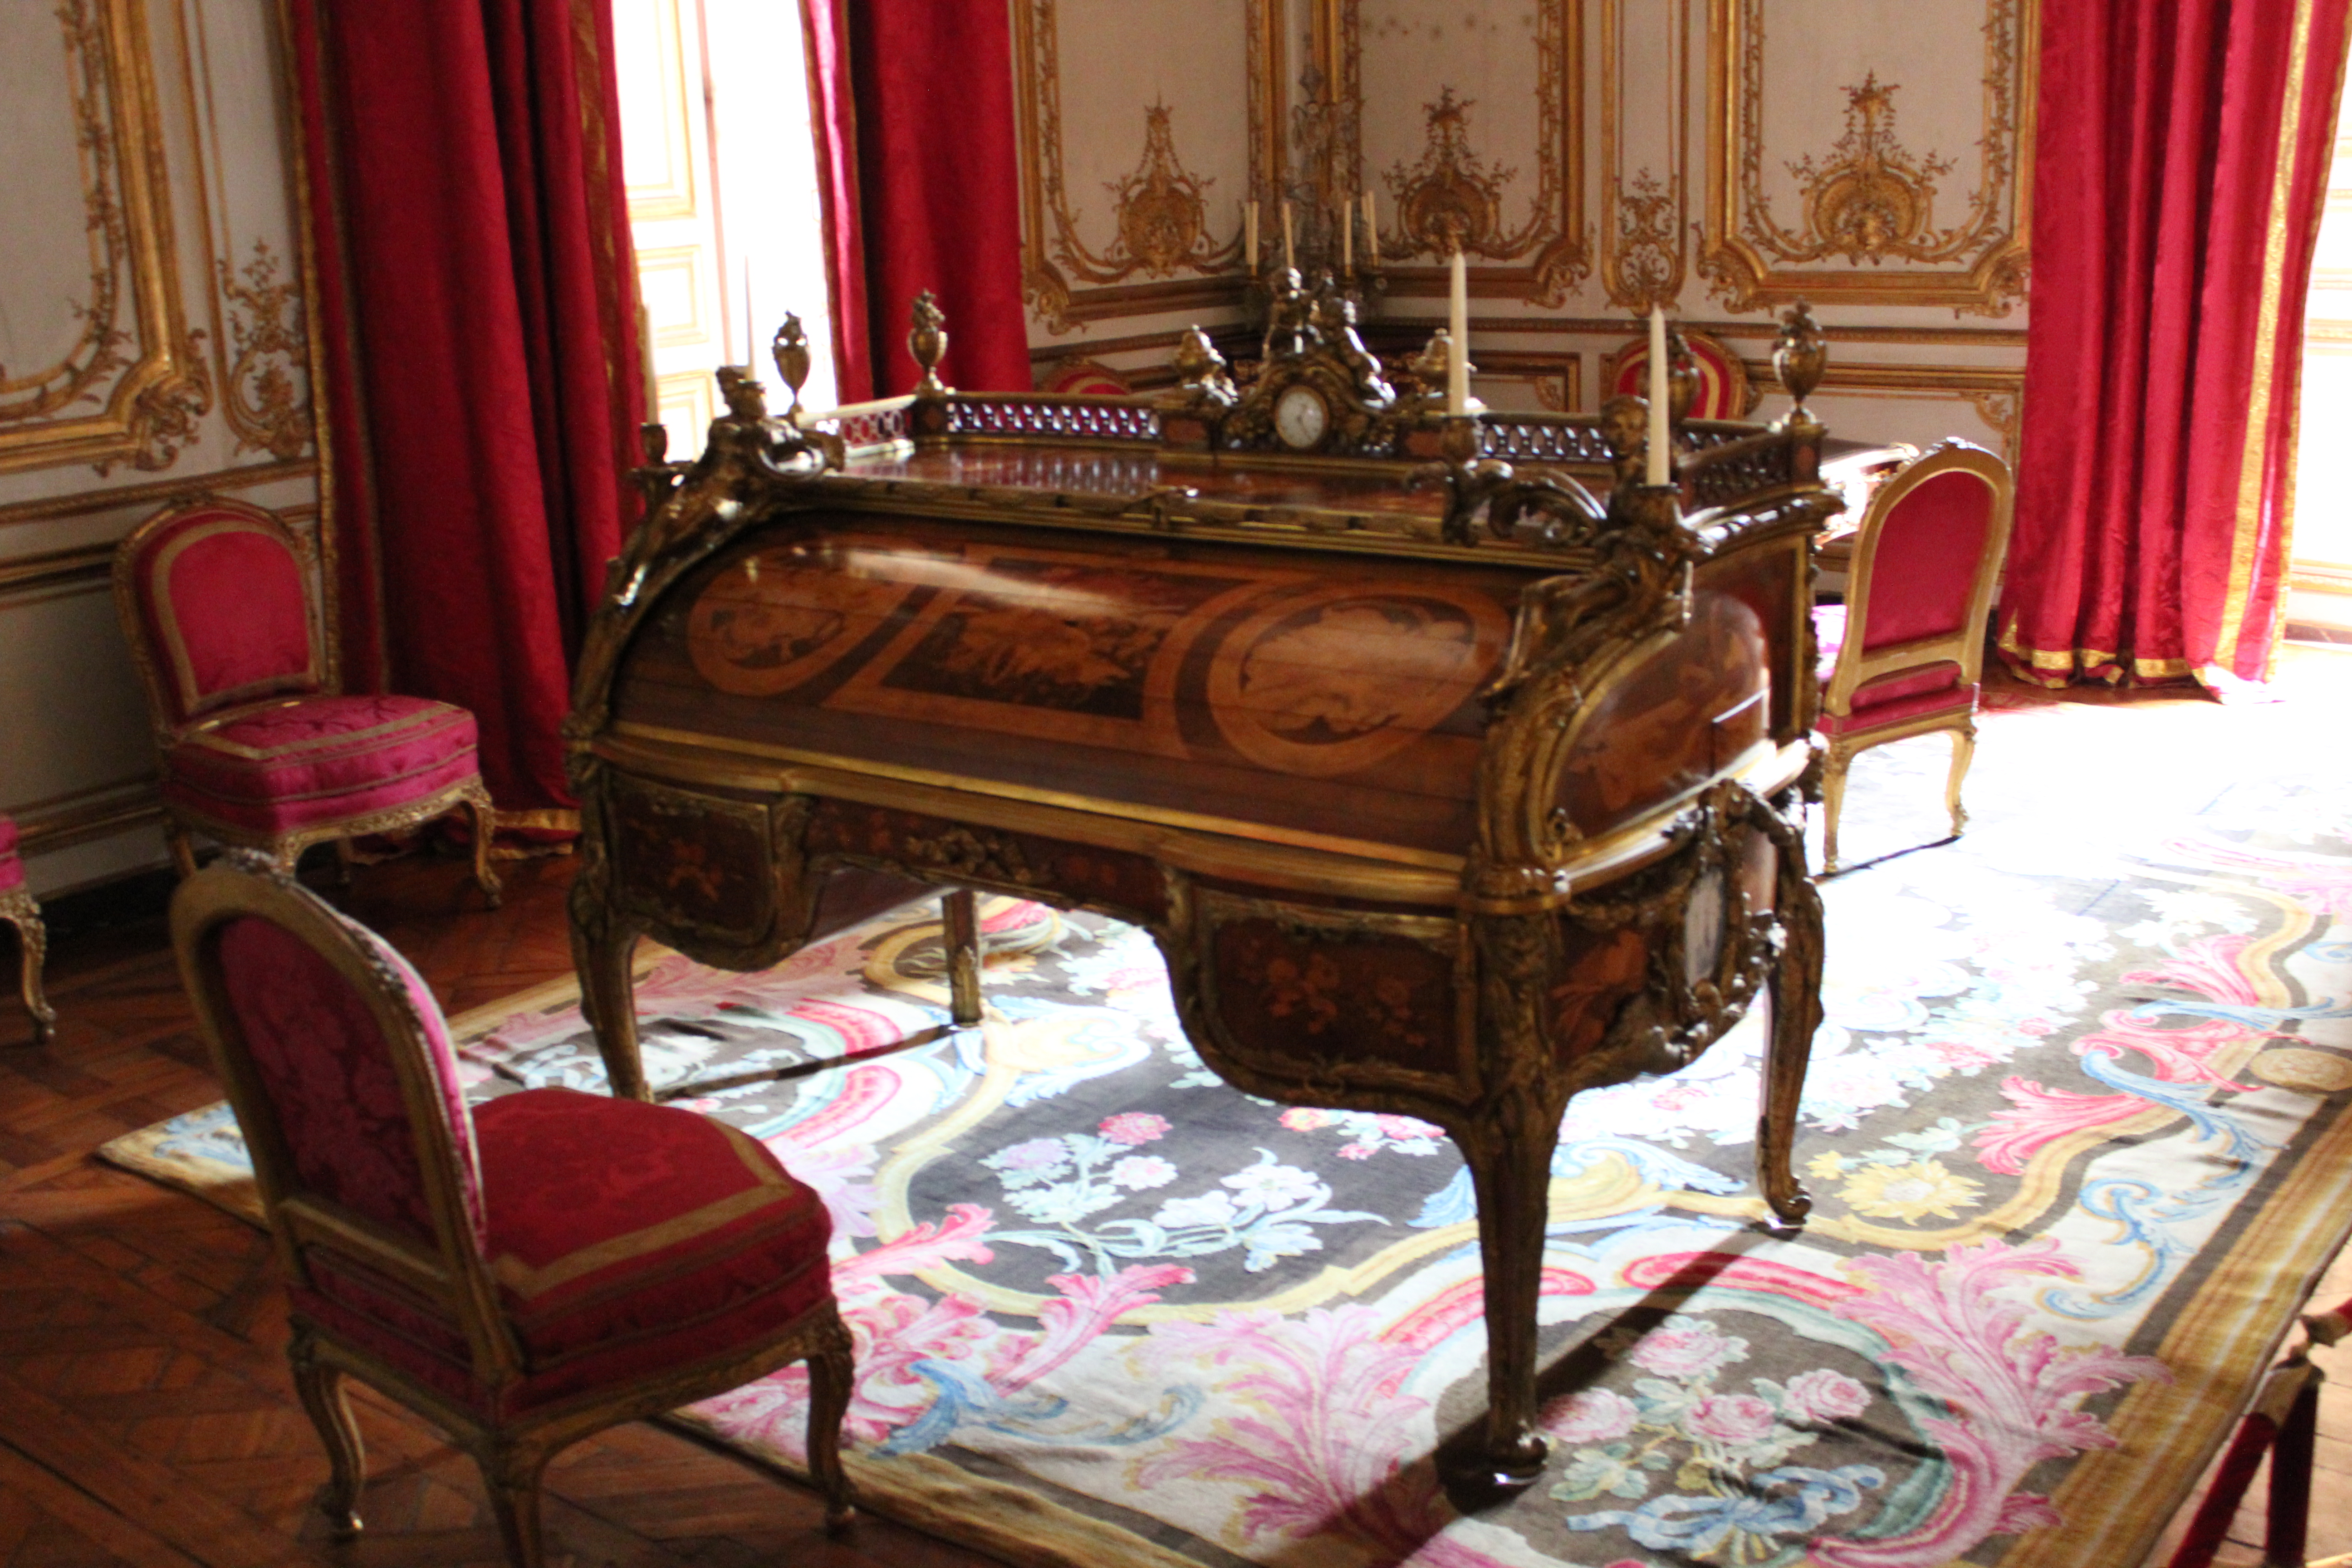 Marie Antoinette Inspired Bedroom Witnessing The Over The Top Splendor Of Versailles Robins Have Wings